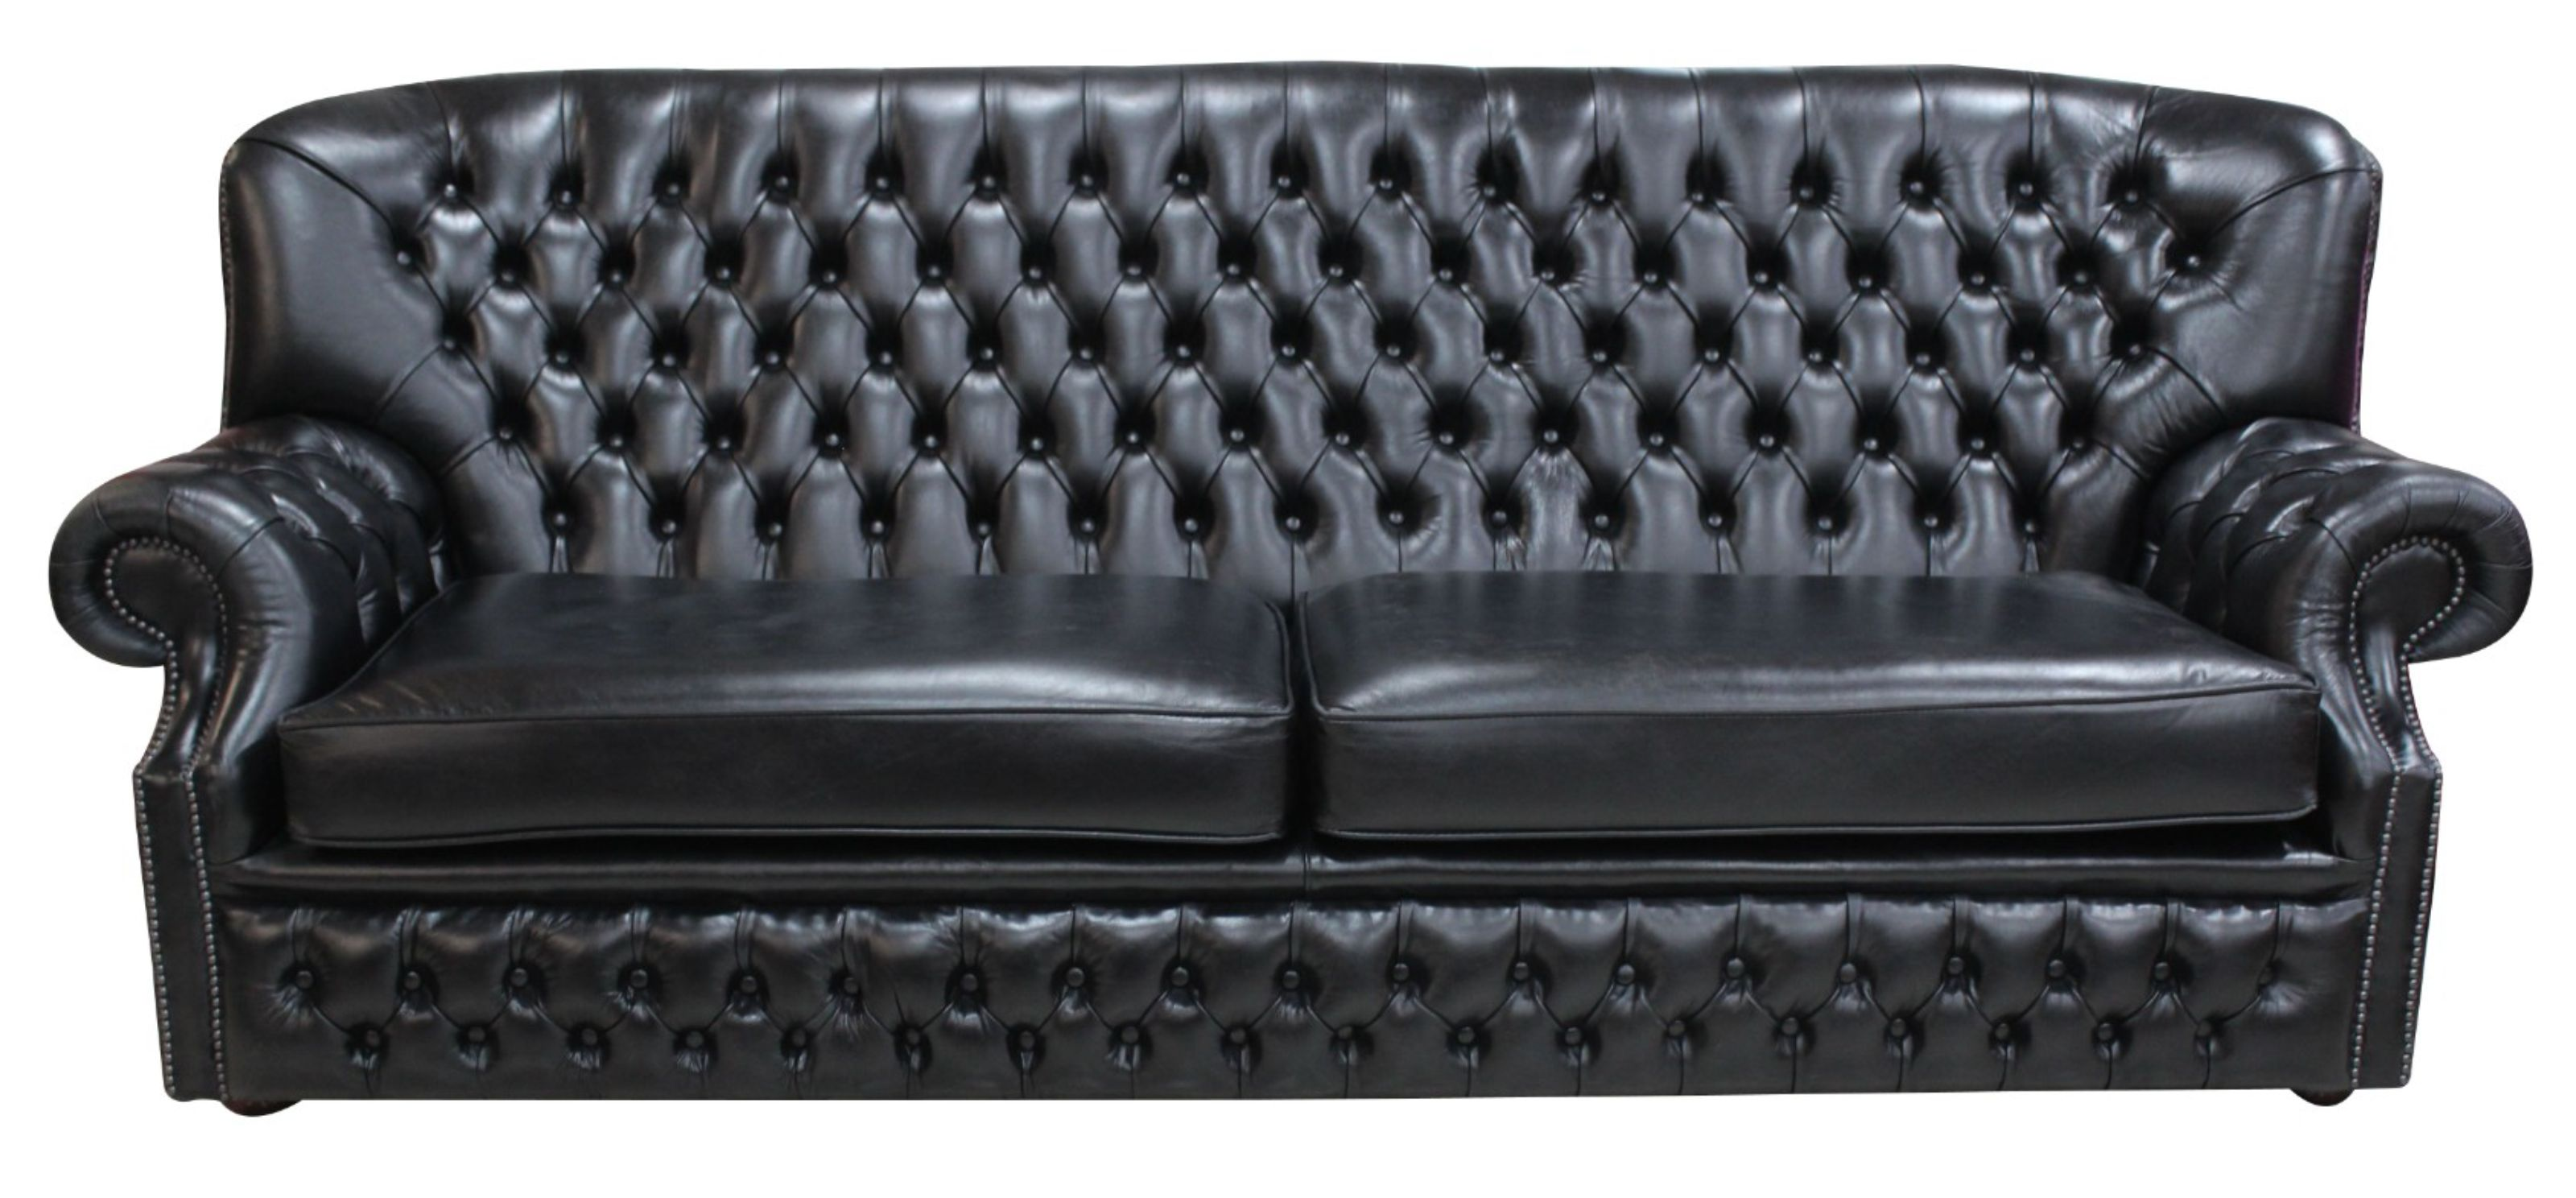 Monks Chesterfield 4-Seater Old English Leather Sofa